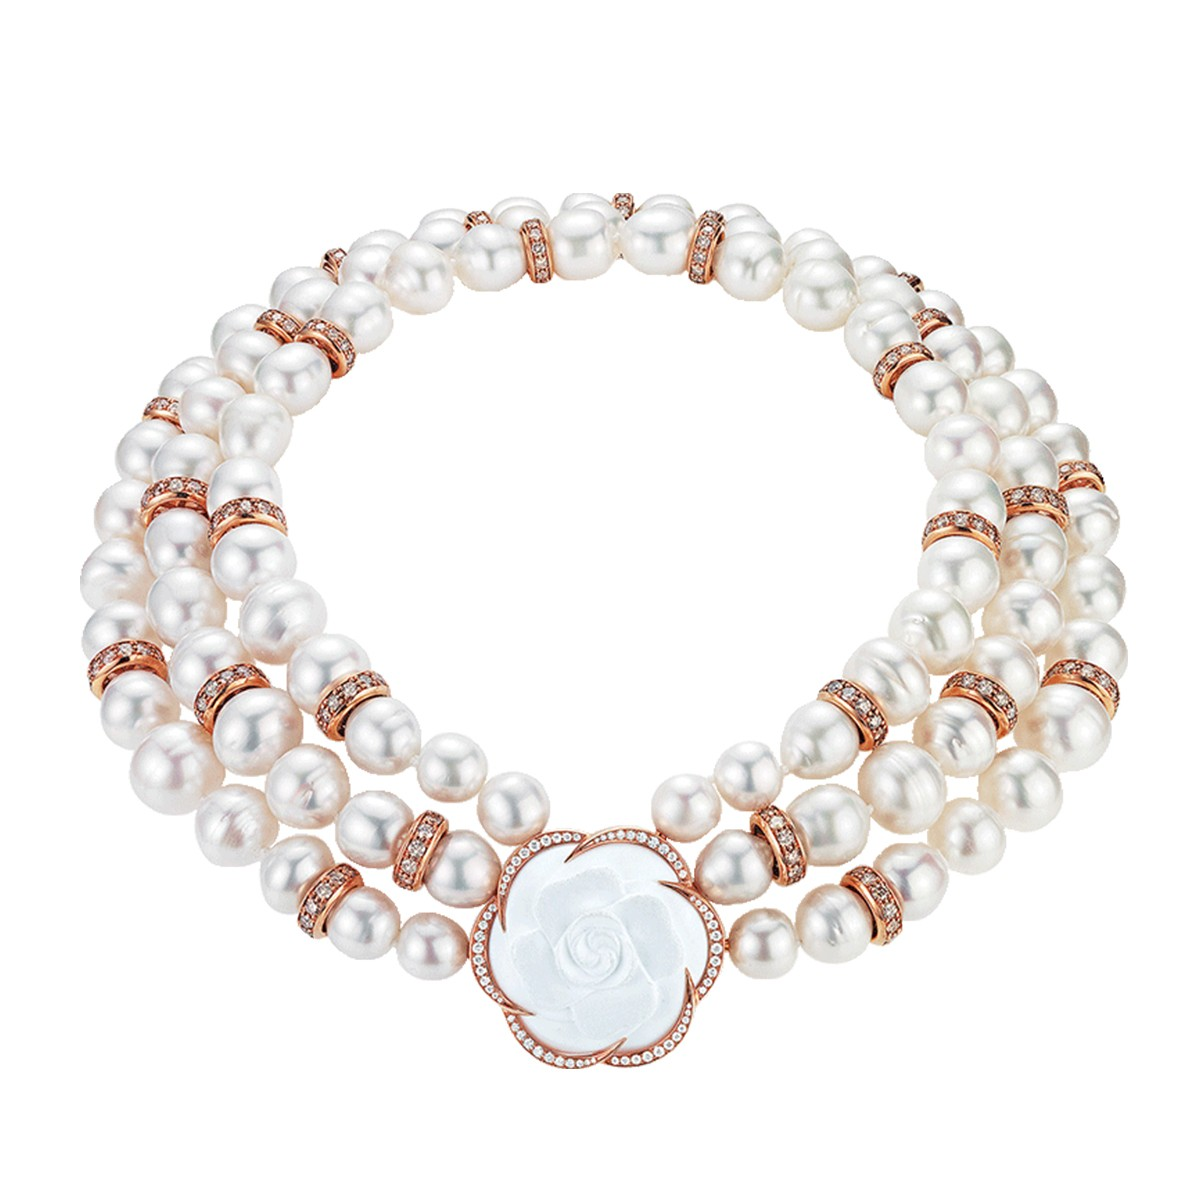 09_Lady-of-Camellias-Collier